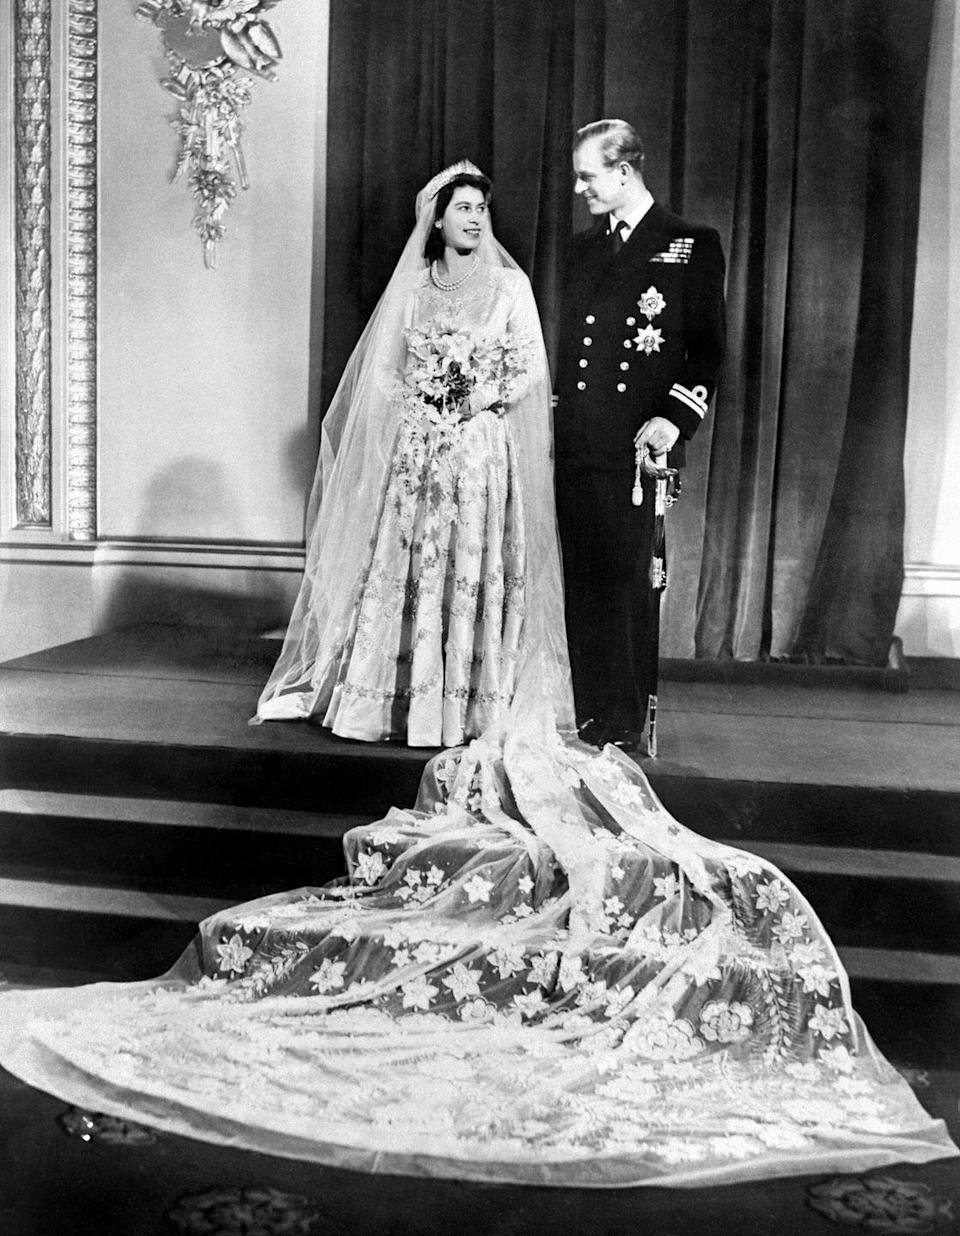 "<p>Designer Norman Hartnell had the honor of designing Her Majesty's rich duchesse satin dress, which drew inspiration from Botticelli's painting <a href=""http://www.italianrenaissance.org/a-closer-look-botticellis-primavera/"" rel=""nofollow noopener"" target=""_blank"" data-ylk=""slk:Primavera"" class=""link rapid-noclick-resp""><em>Primavera</em></a>. The dress was made of silk from China (not Japan or Italy, given the proximity to World War II) and was intended to symbolize ""<a href=""http://www.townandcountrymag.com/society/tradition/a13438510/queen-elizabeth-wedding-dress/"" rel=""nofollow noopener"" target=""_blank"" data-ylk=""slk:rebirth and growth"" class=""link rapid-noclick-resp"">rebirth and growth</a>."" The queen famously saved up ration cards to pay for the dress, which took 350 women seven weeks to create.</p>"